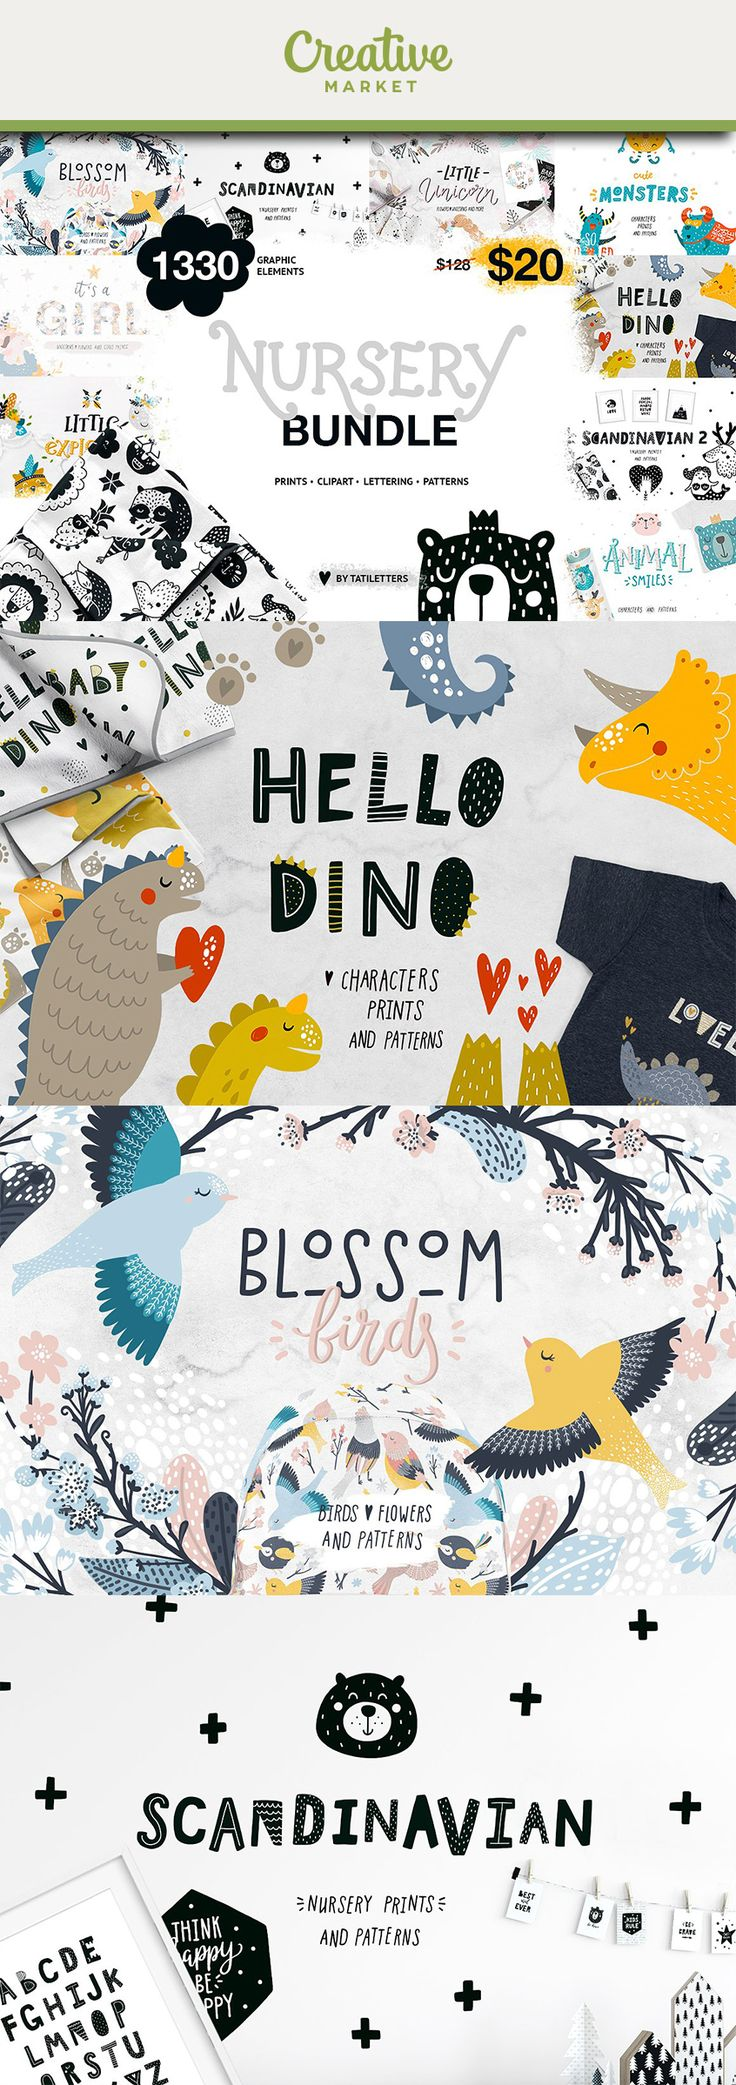 Ad | Included 9 of my favorite collections♥️with over1330elements, patterns, cute animals, stickers, alphabet, printable art and lettering!This set is just what you need for the children's clothing, nursery wall art, products for kids and room decor.This bundle is perfect for Owner's of Kid-Focused Business, Crafters and just cute addition to a nursery or playroom!